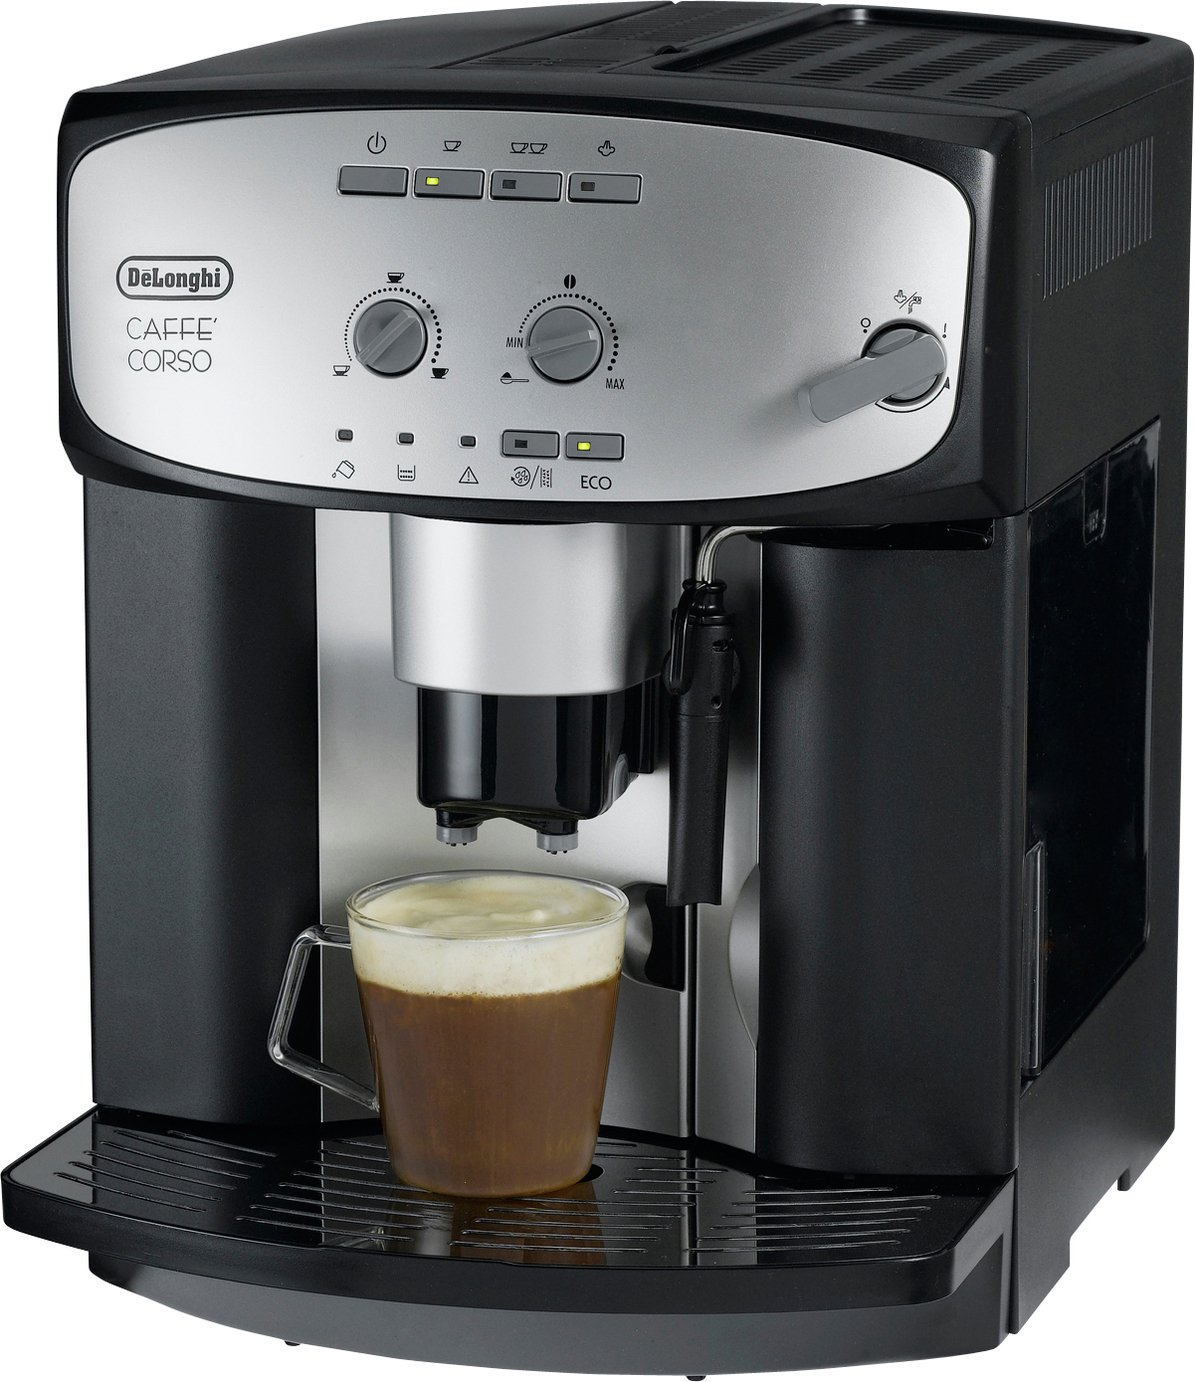 shop for coffee machines accessories equipment and gifts. Black Bedroom Furniture Sets. Home Design Ideas